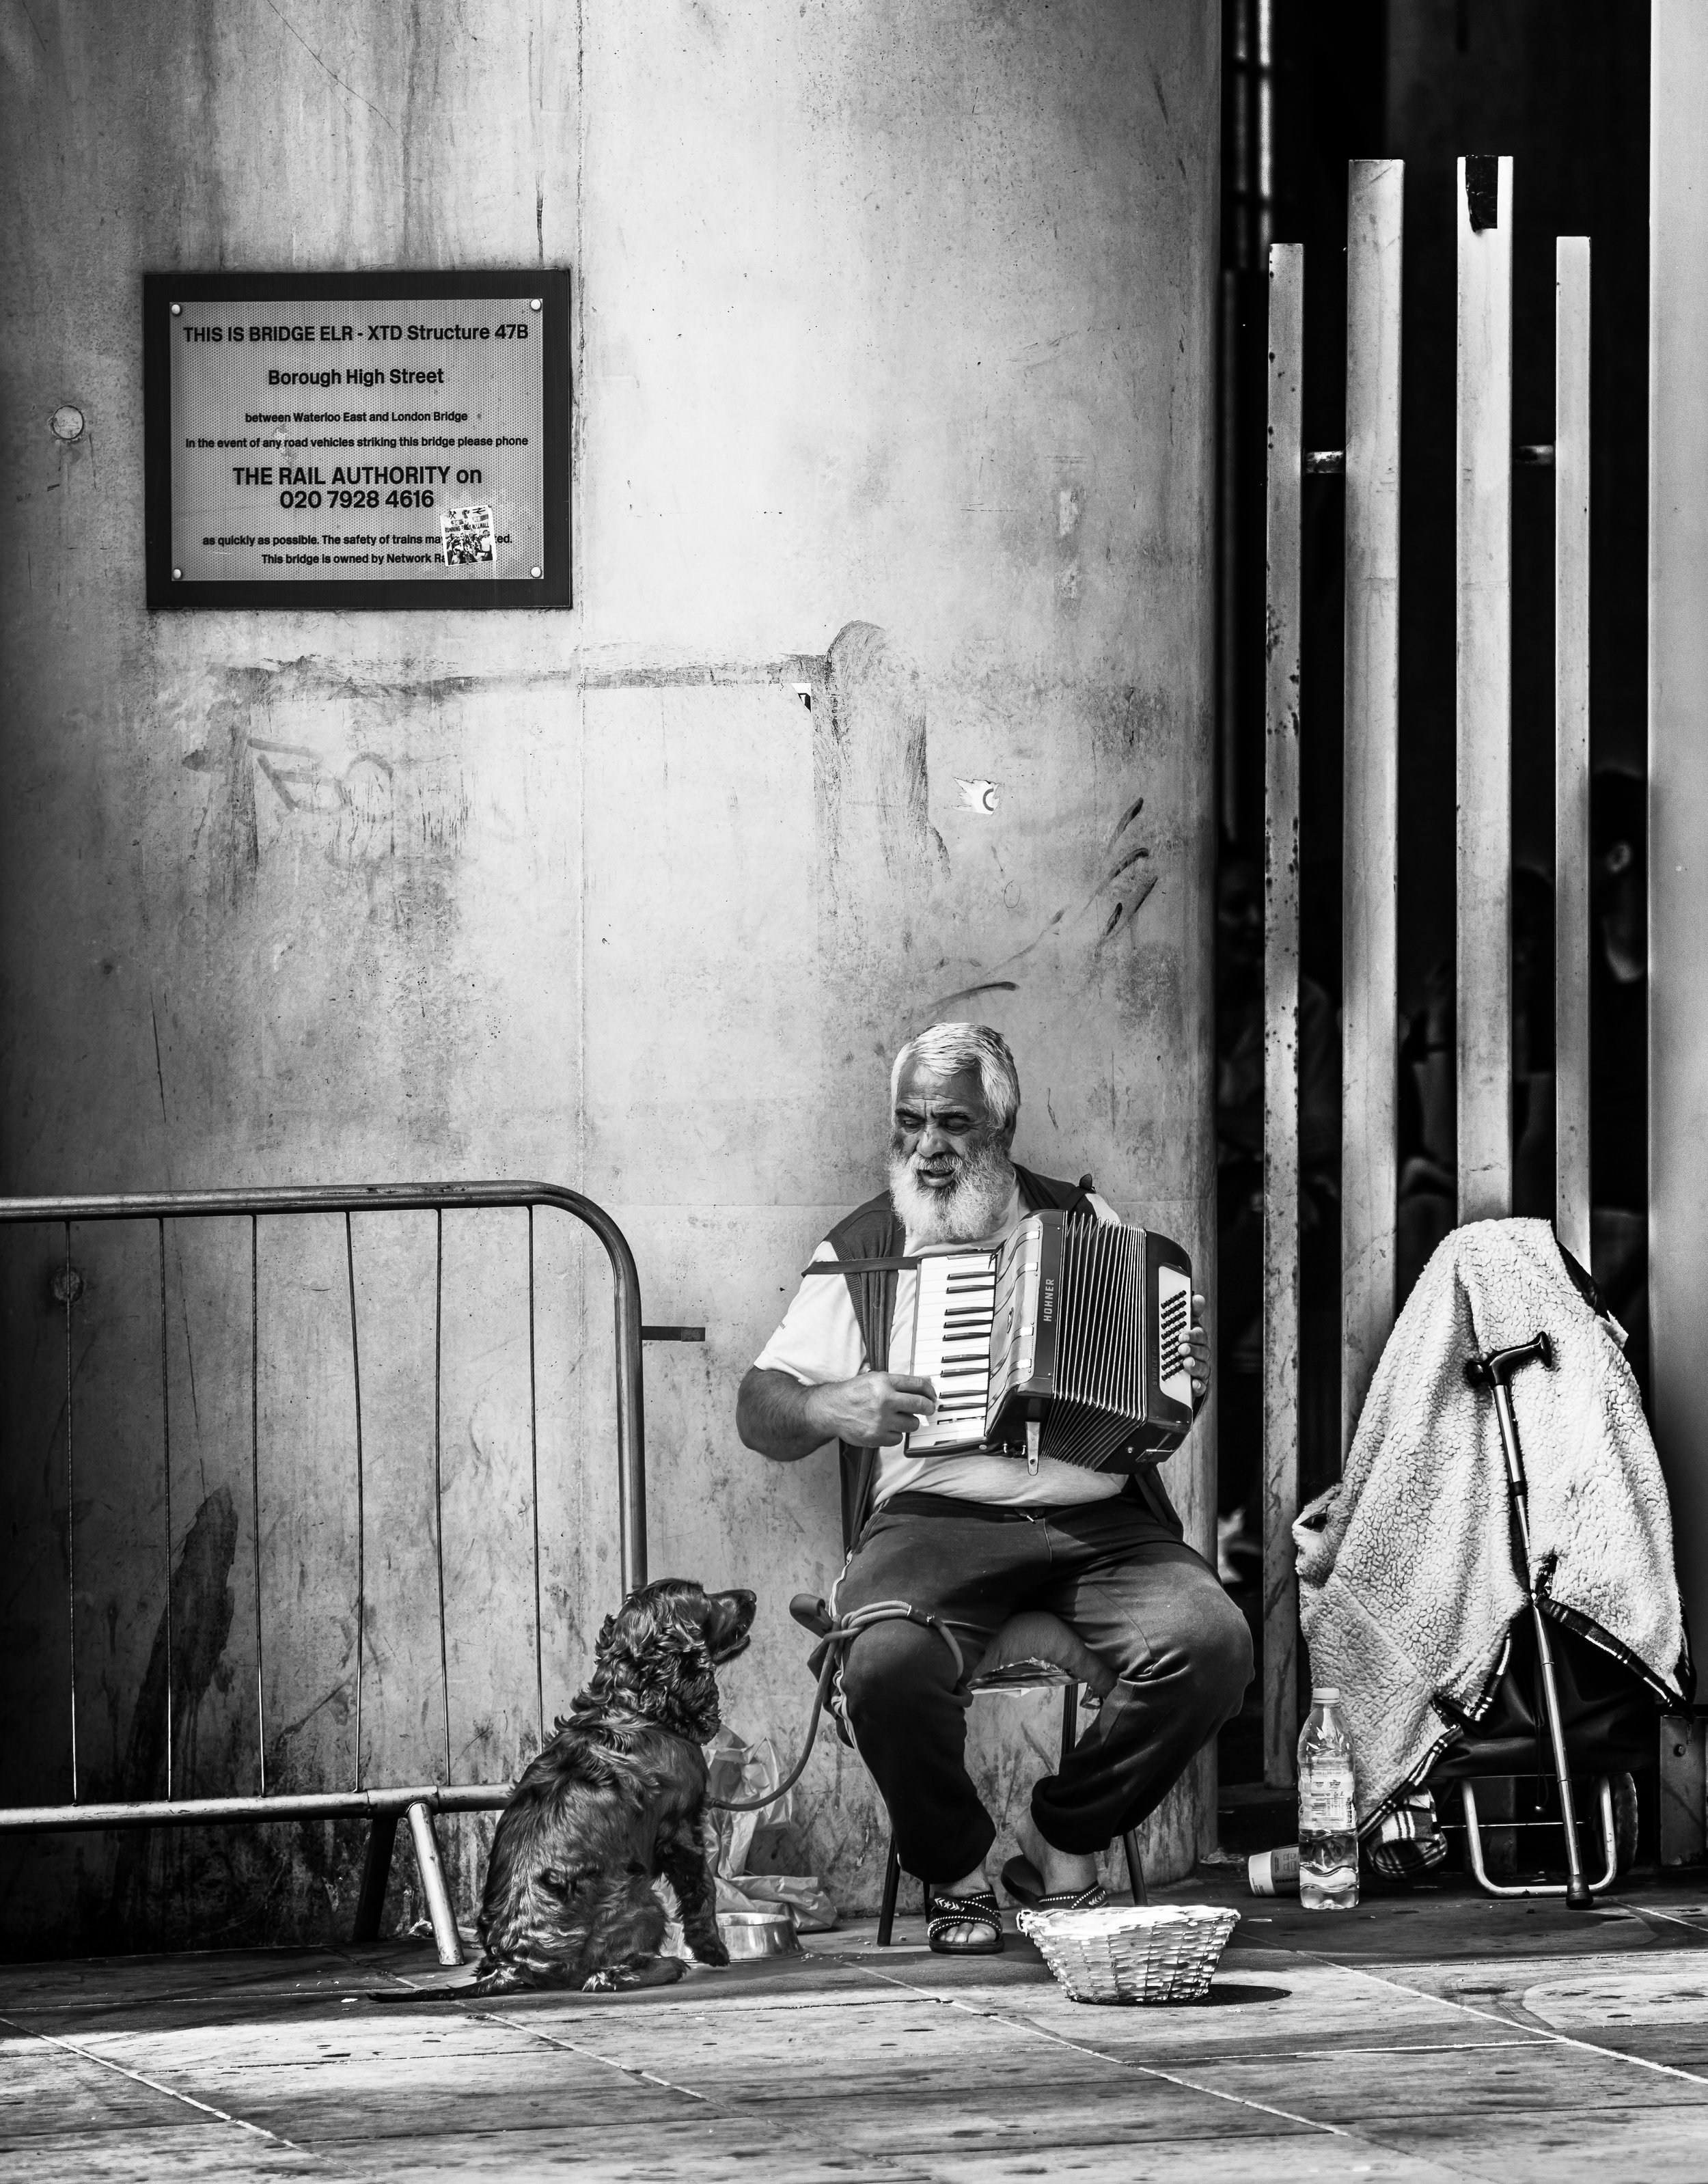 A Street entertainer playing the accordion while his dog admires him - July 2018